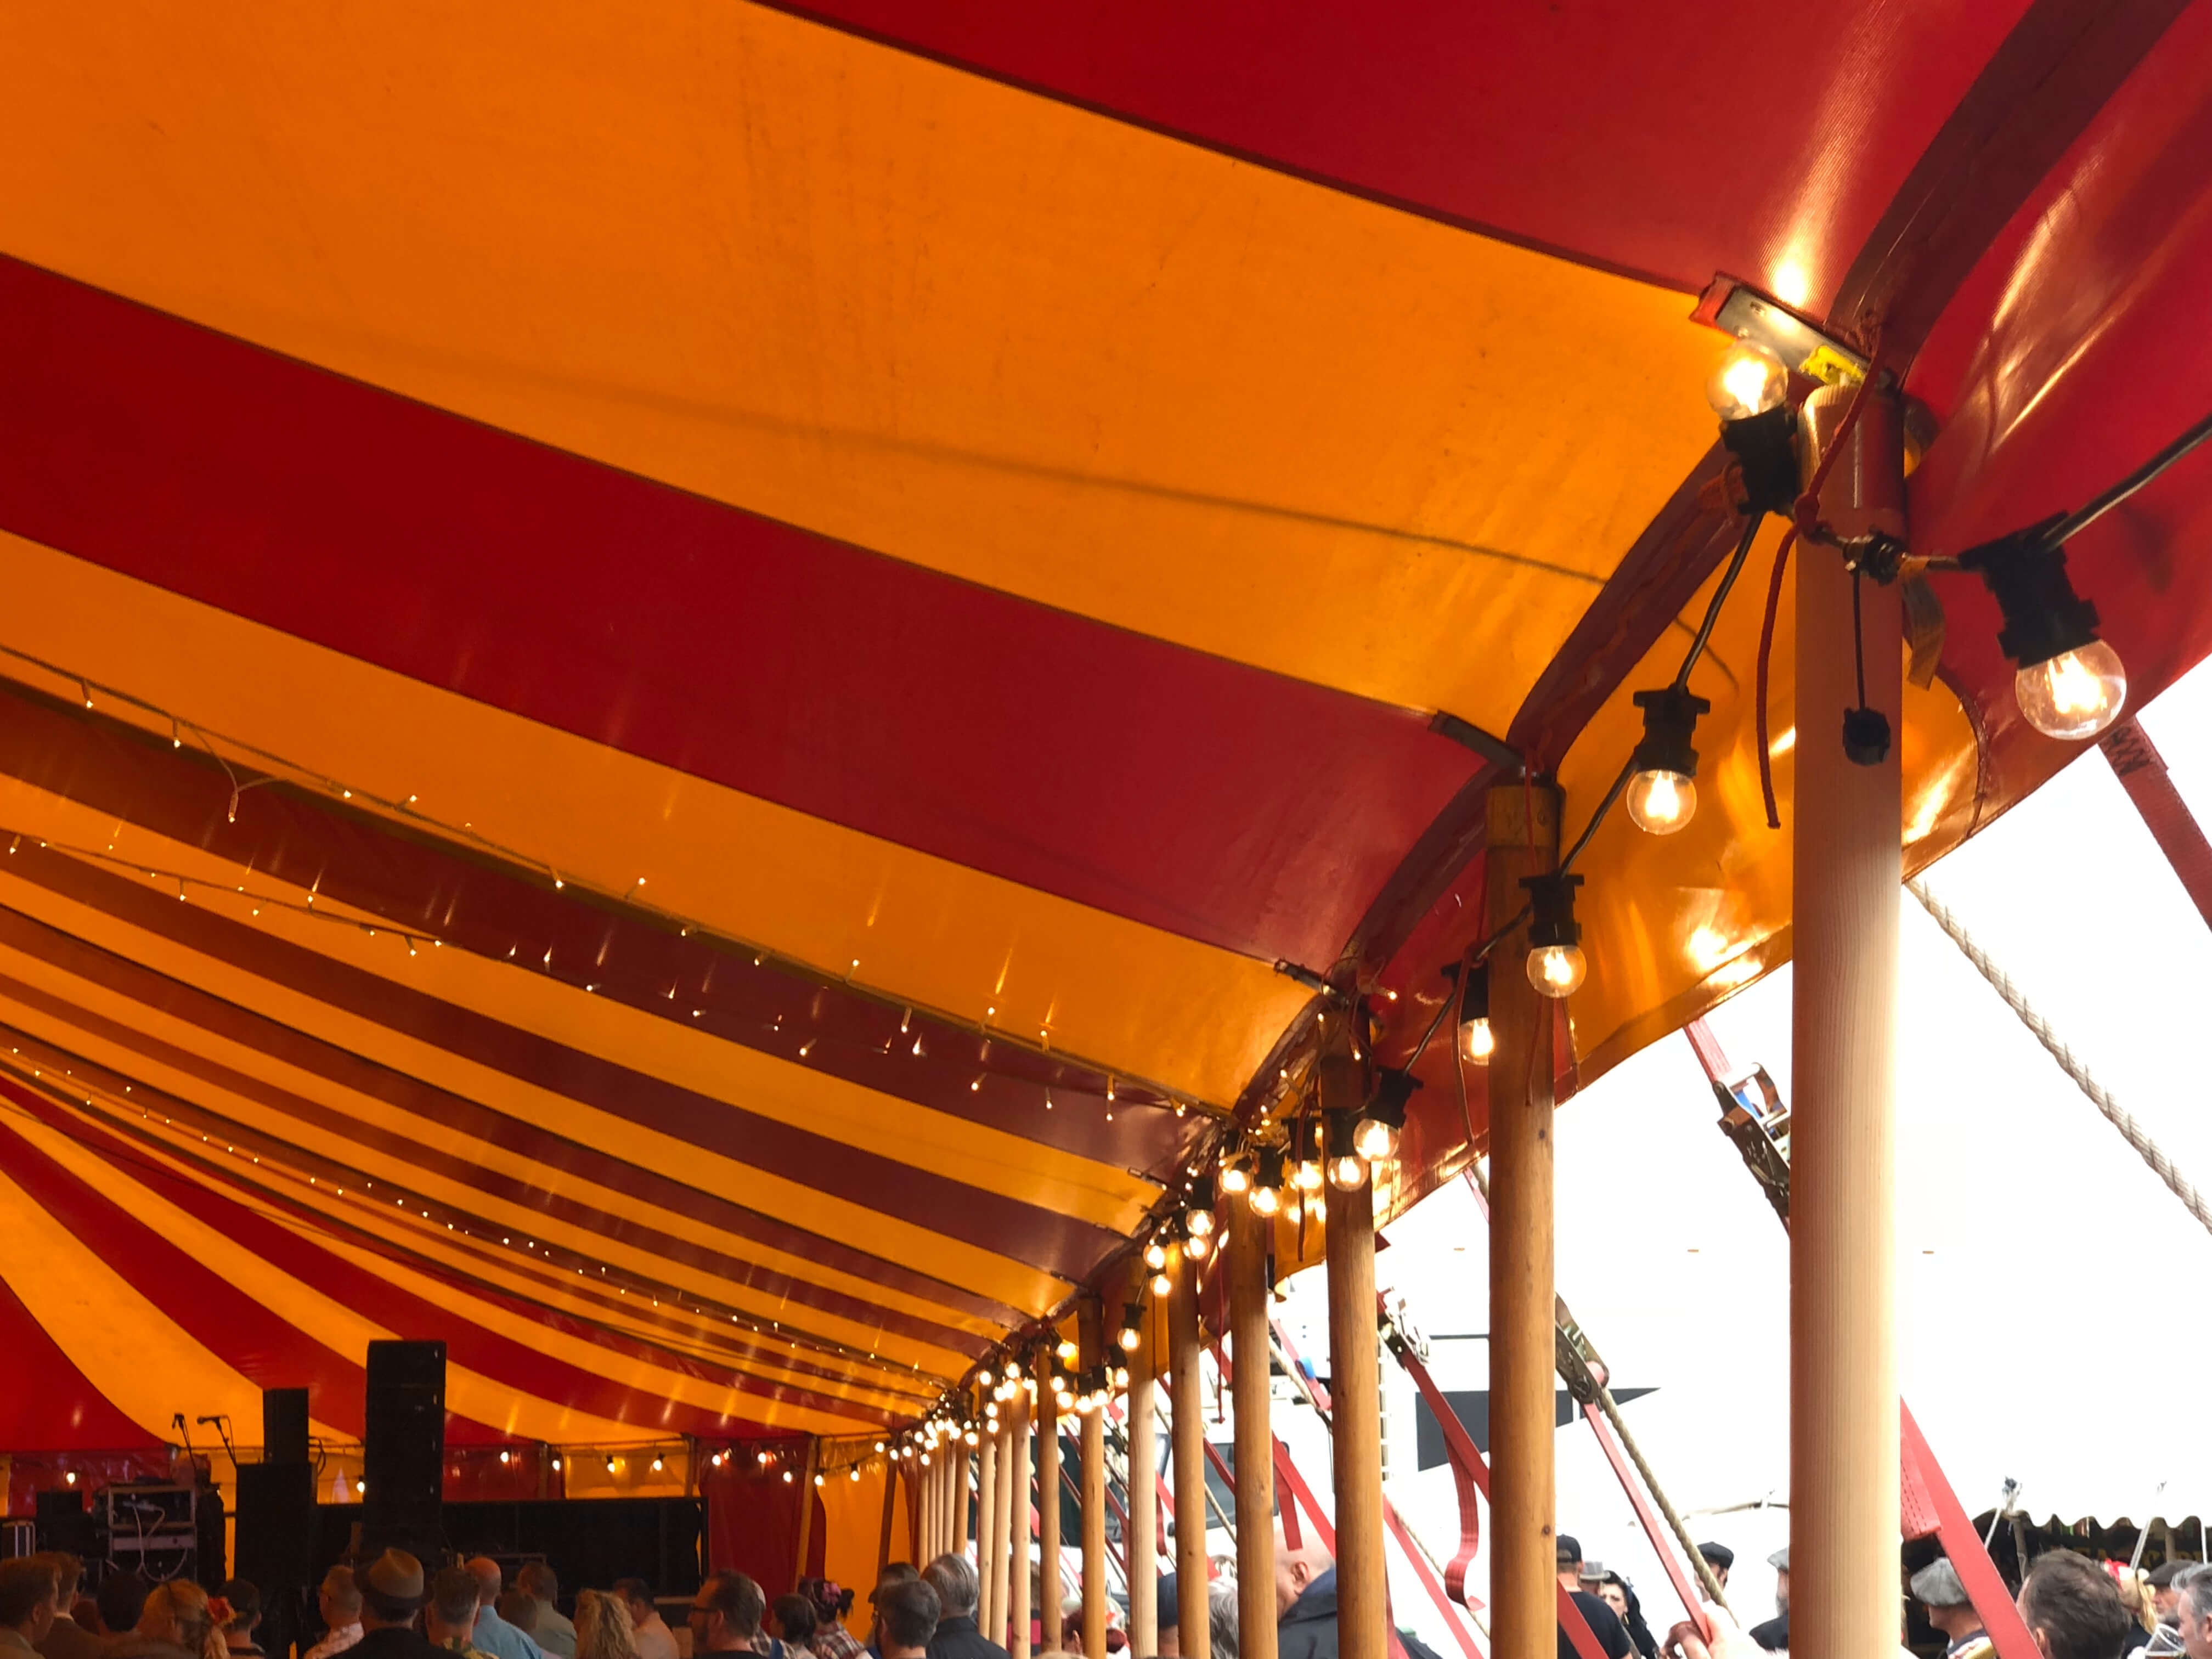 Beautiful wooden marquee side poles and festoons